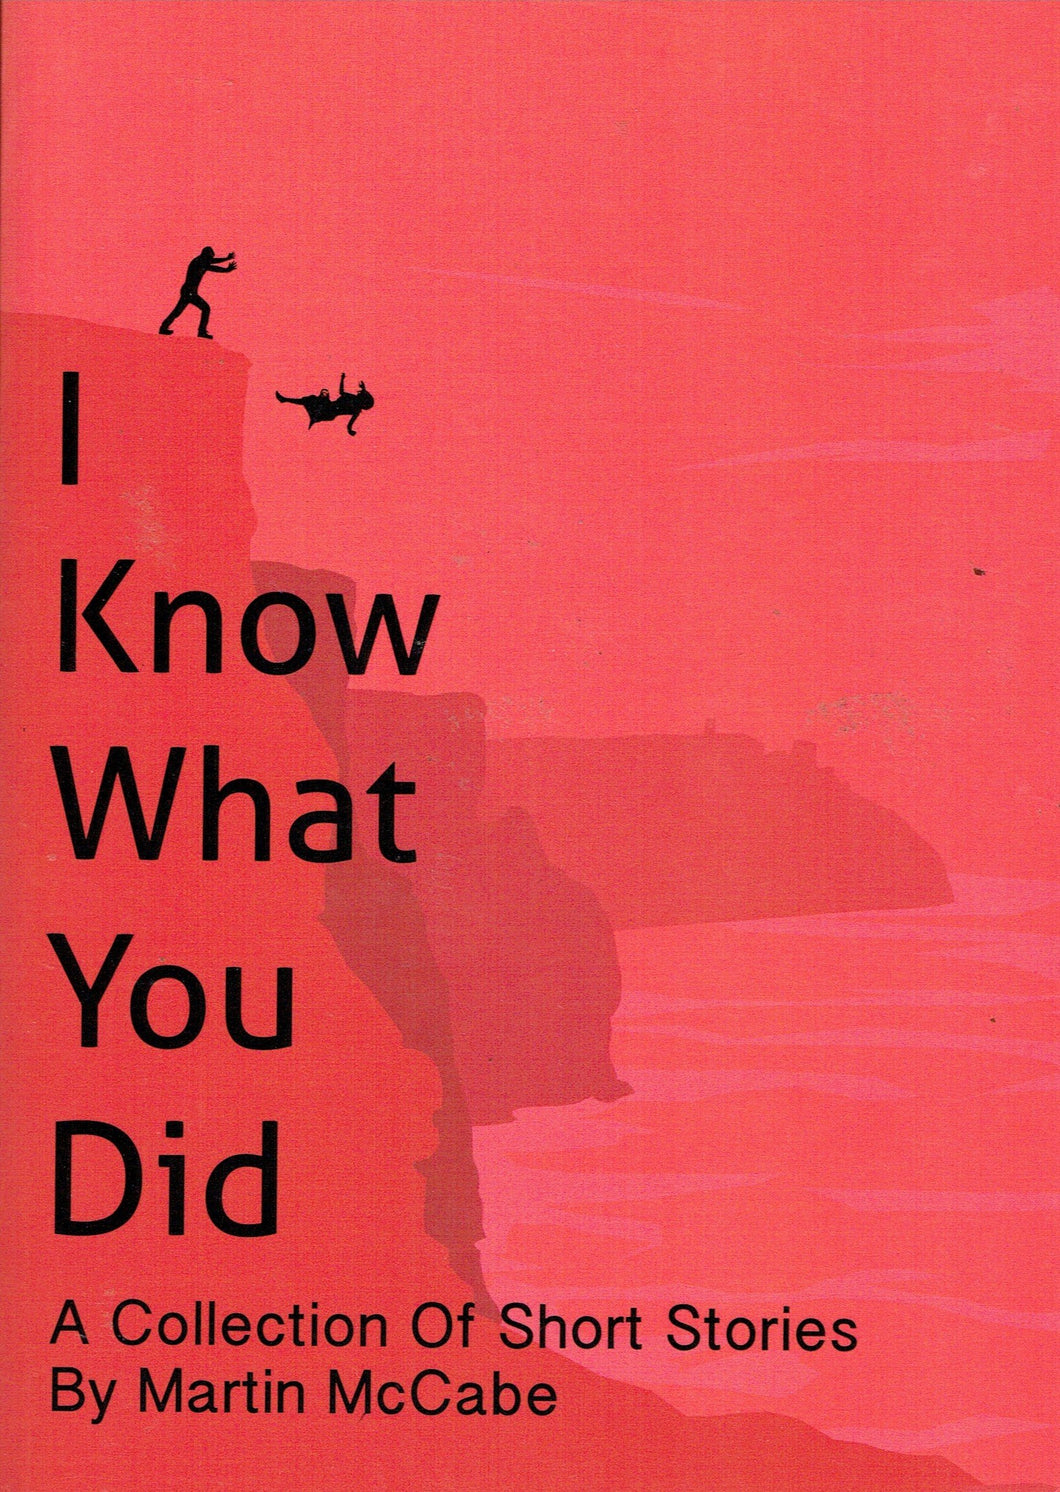 I Know What You Did: A Collection of Short Stories